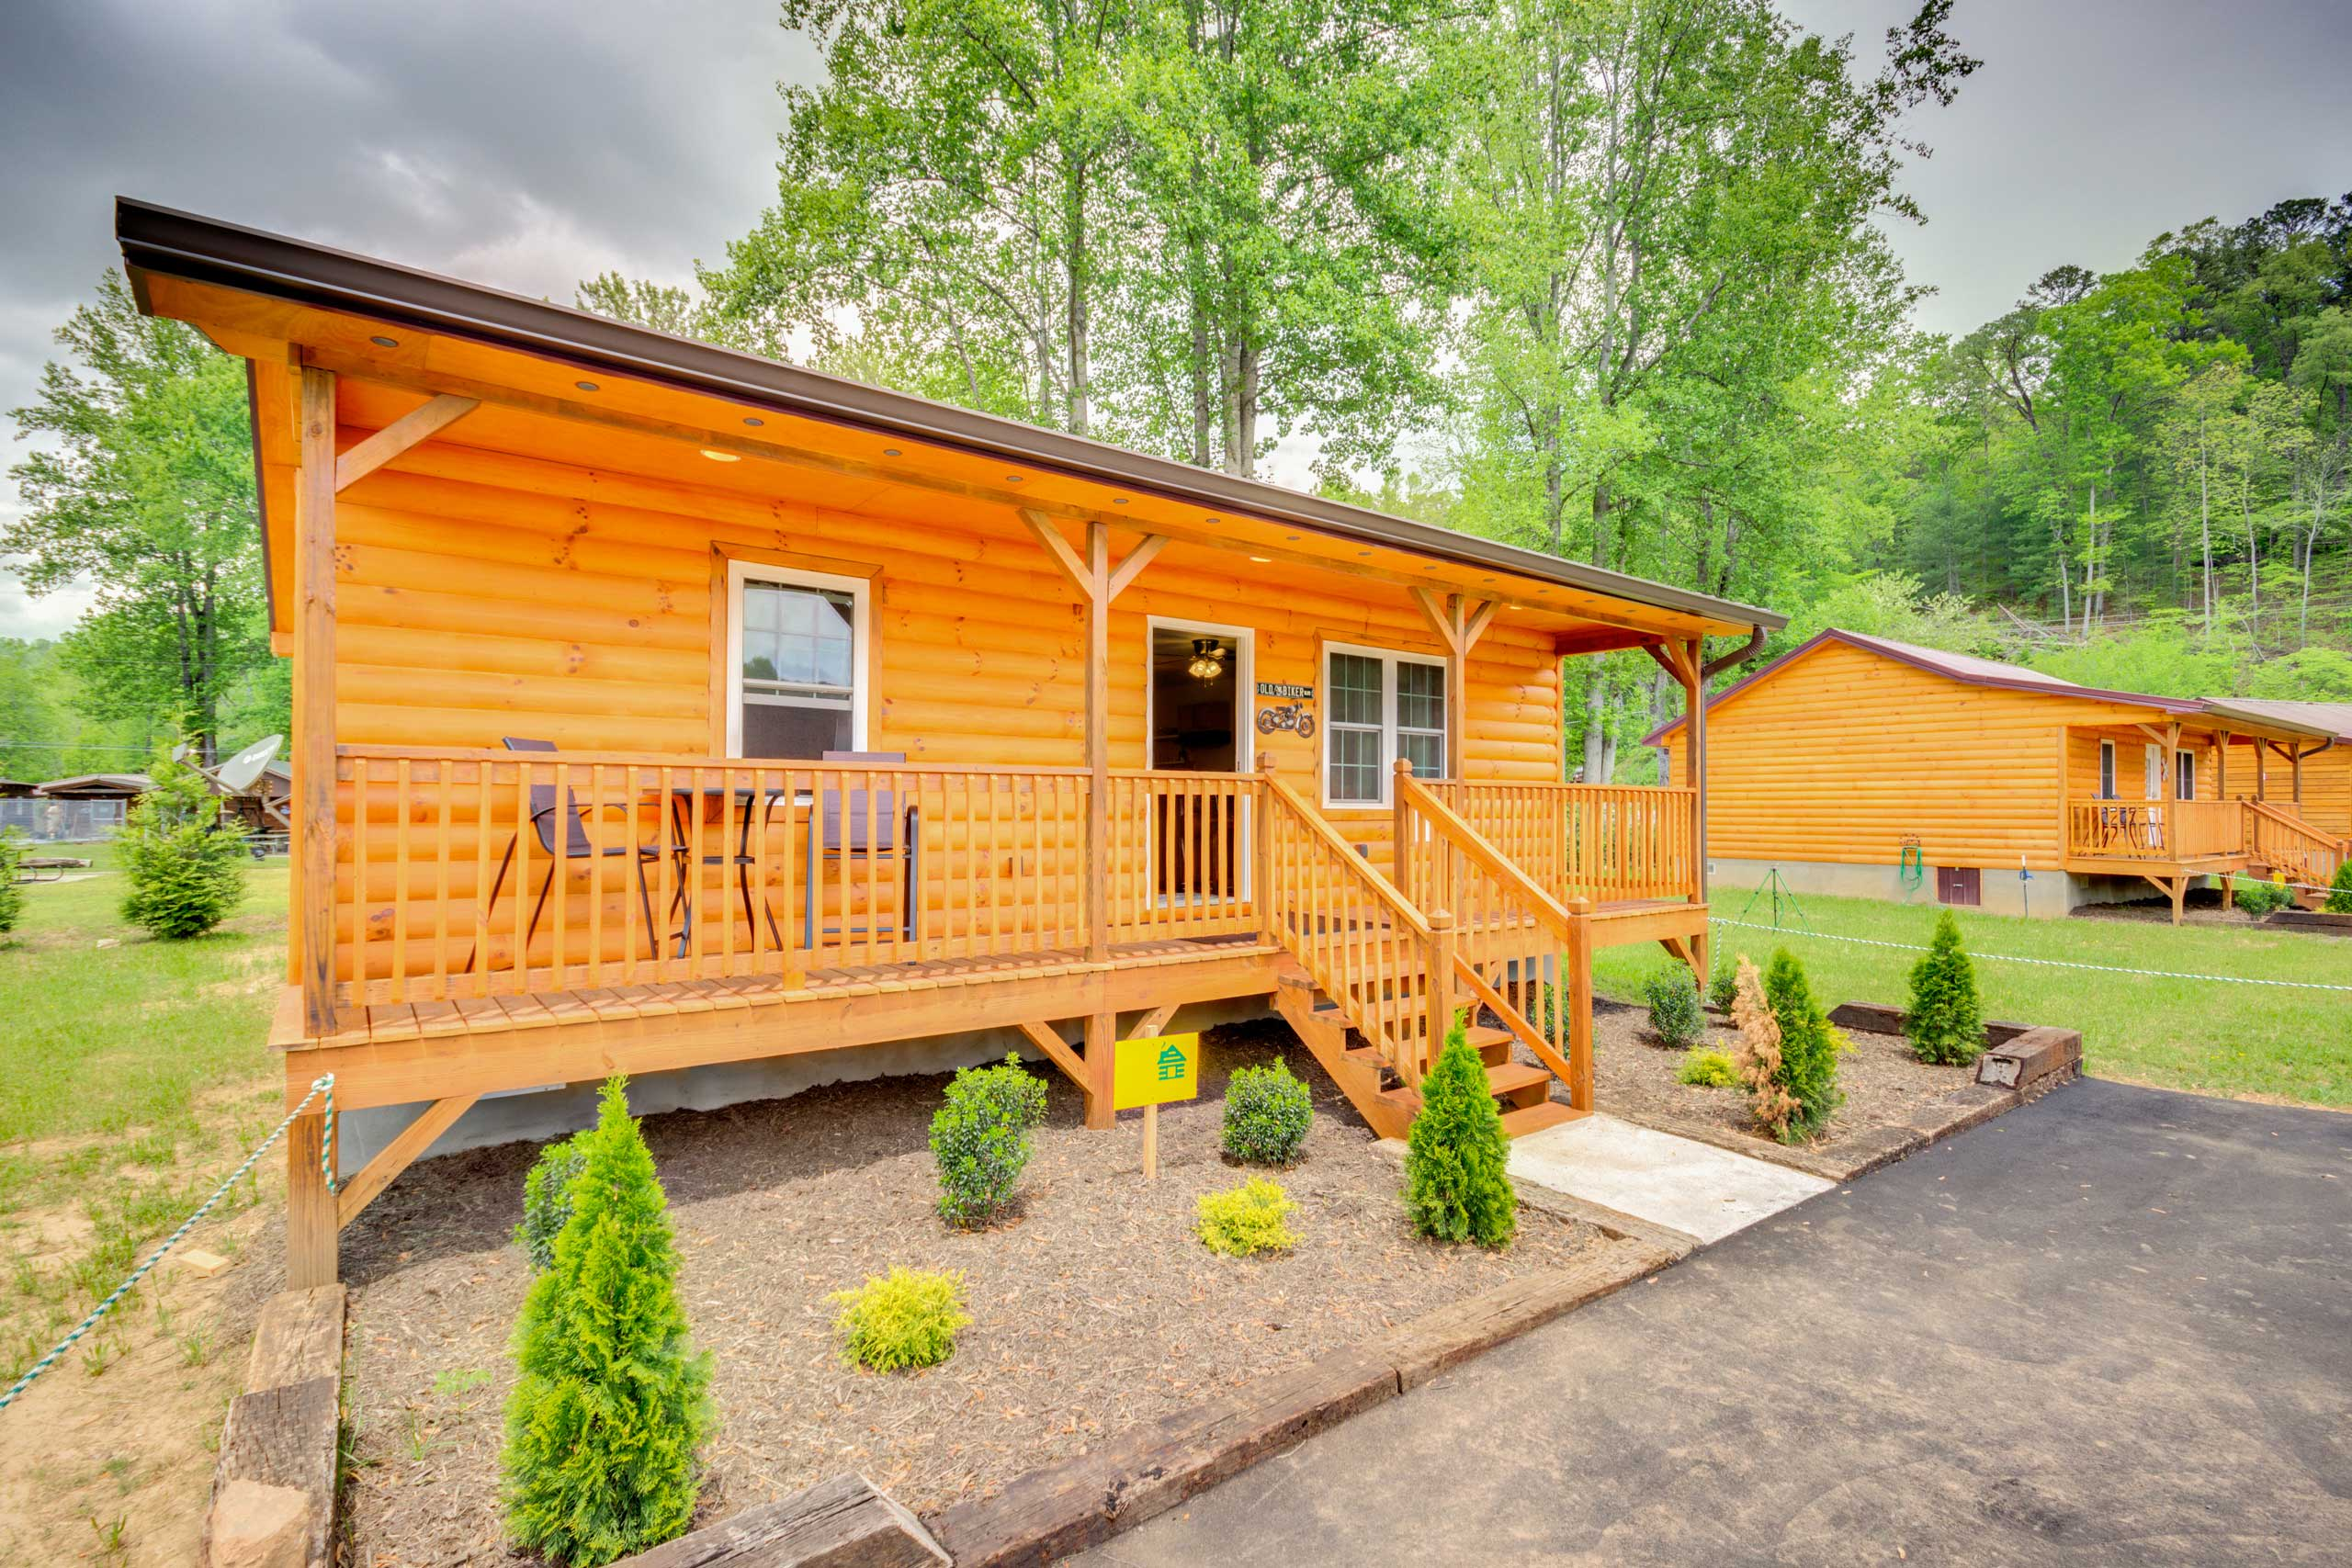 This charming cabin is located in a newly constructed neighborhood.